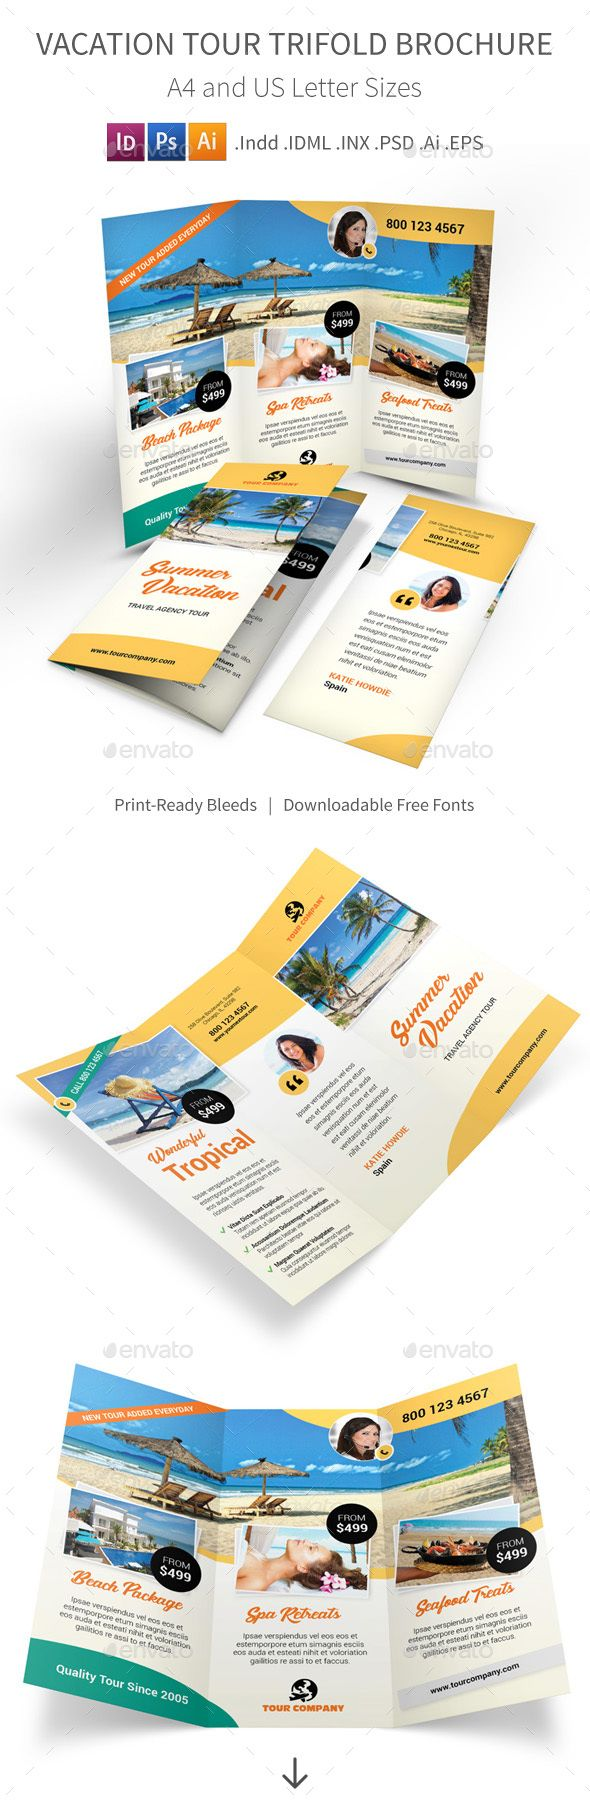 Best Informational Brochure Template Images On Pinterest - Informational brochure template